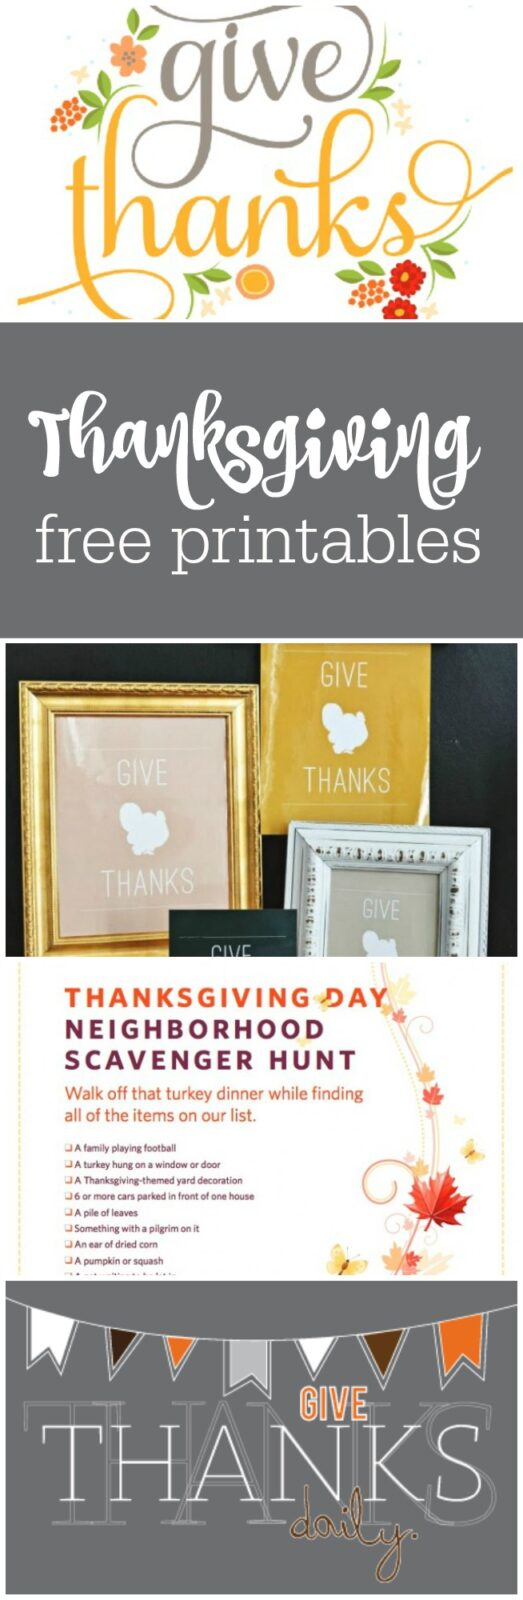 Free Thanksgiving printables curated by The Party Teacher